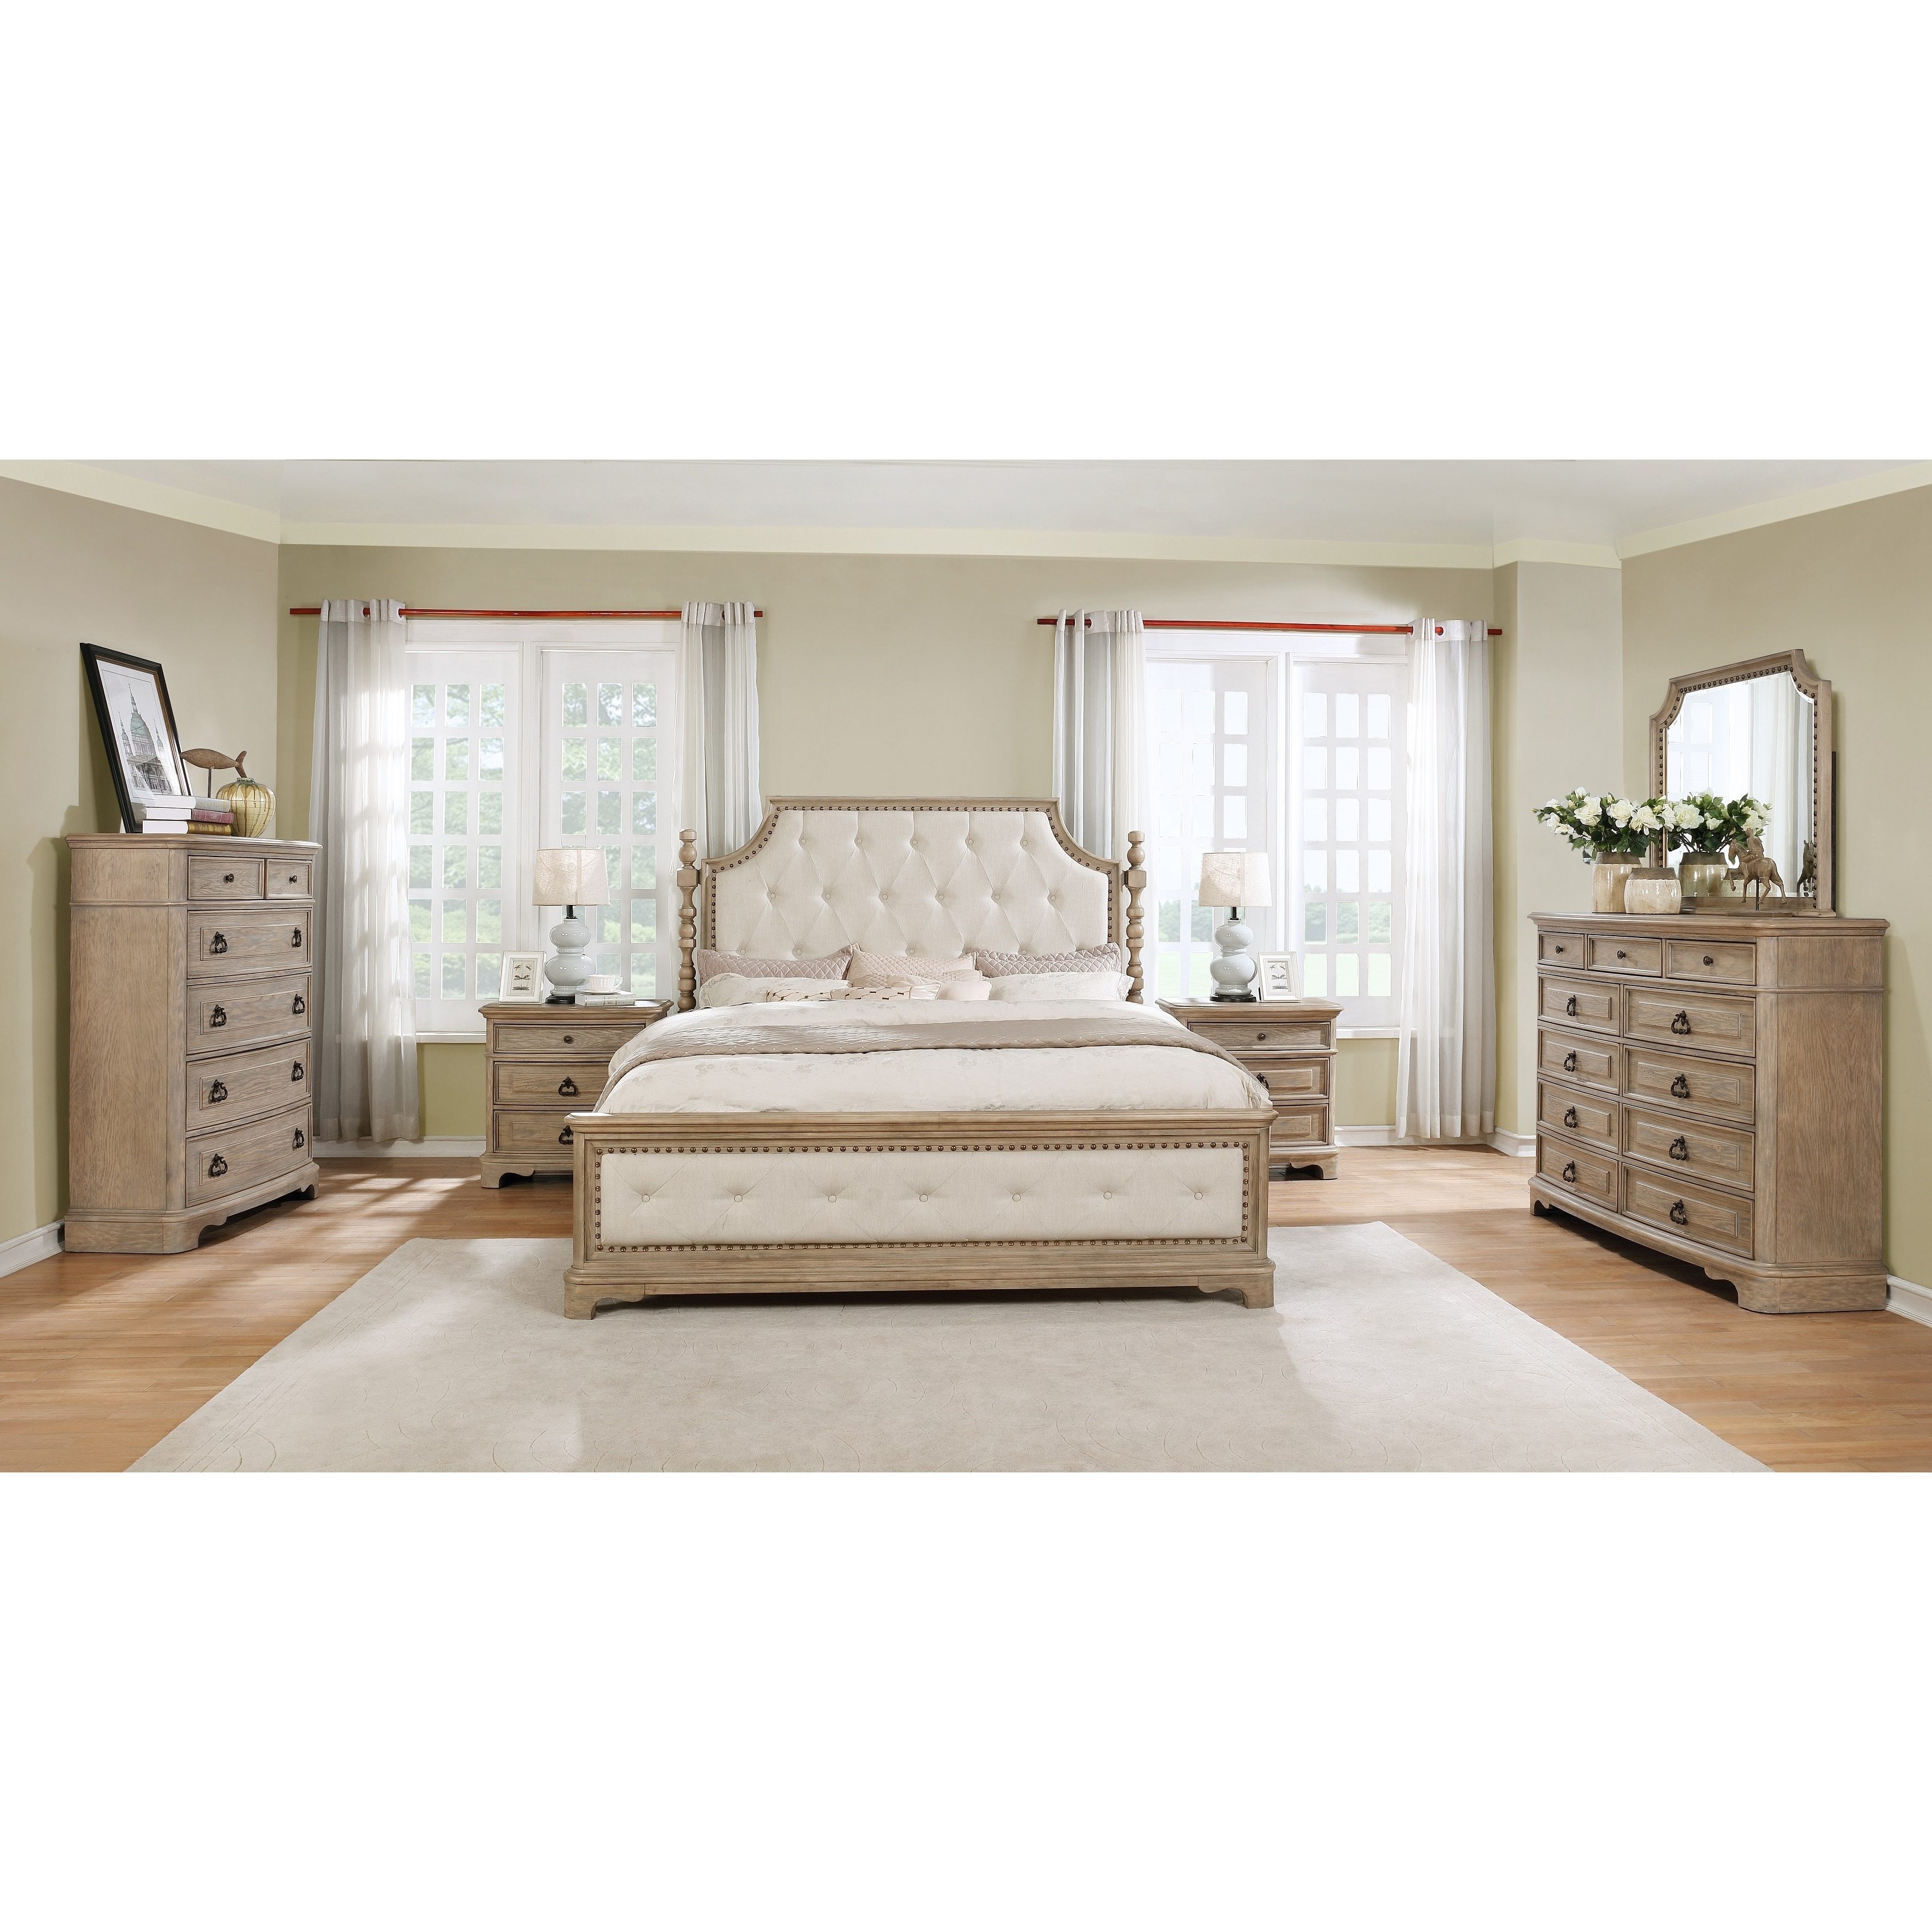 Delicieux Piraeus 296 Solid Wood Construction Bedroom Set With King Size Bed,  Dresser, Mirror,